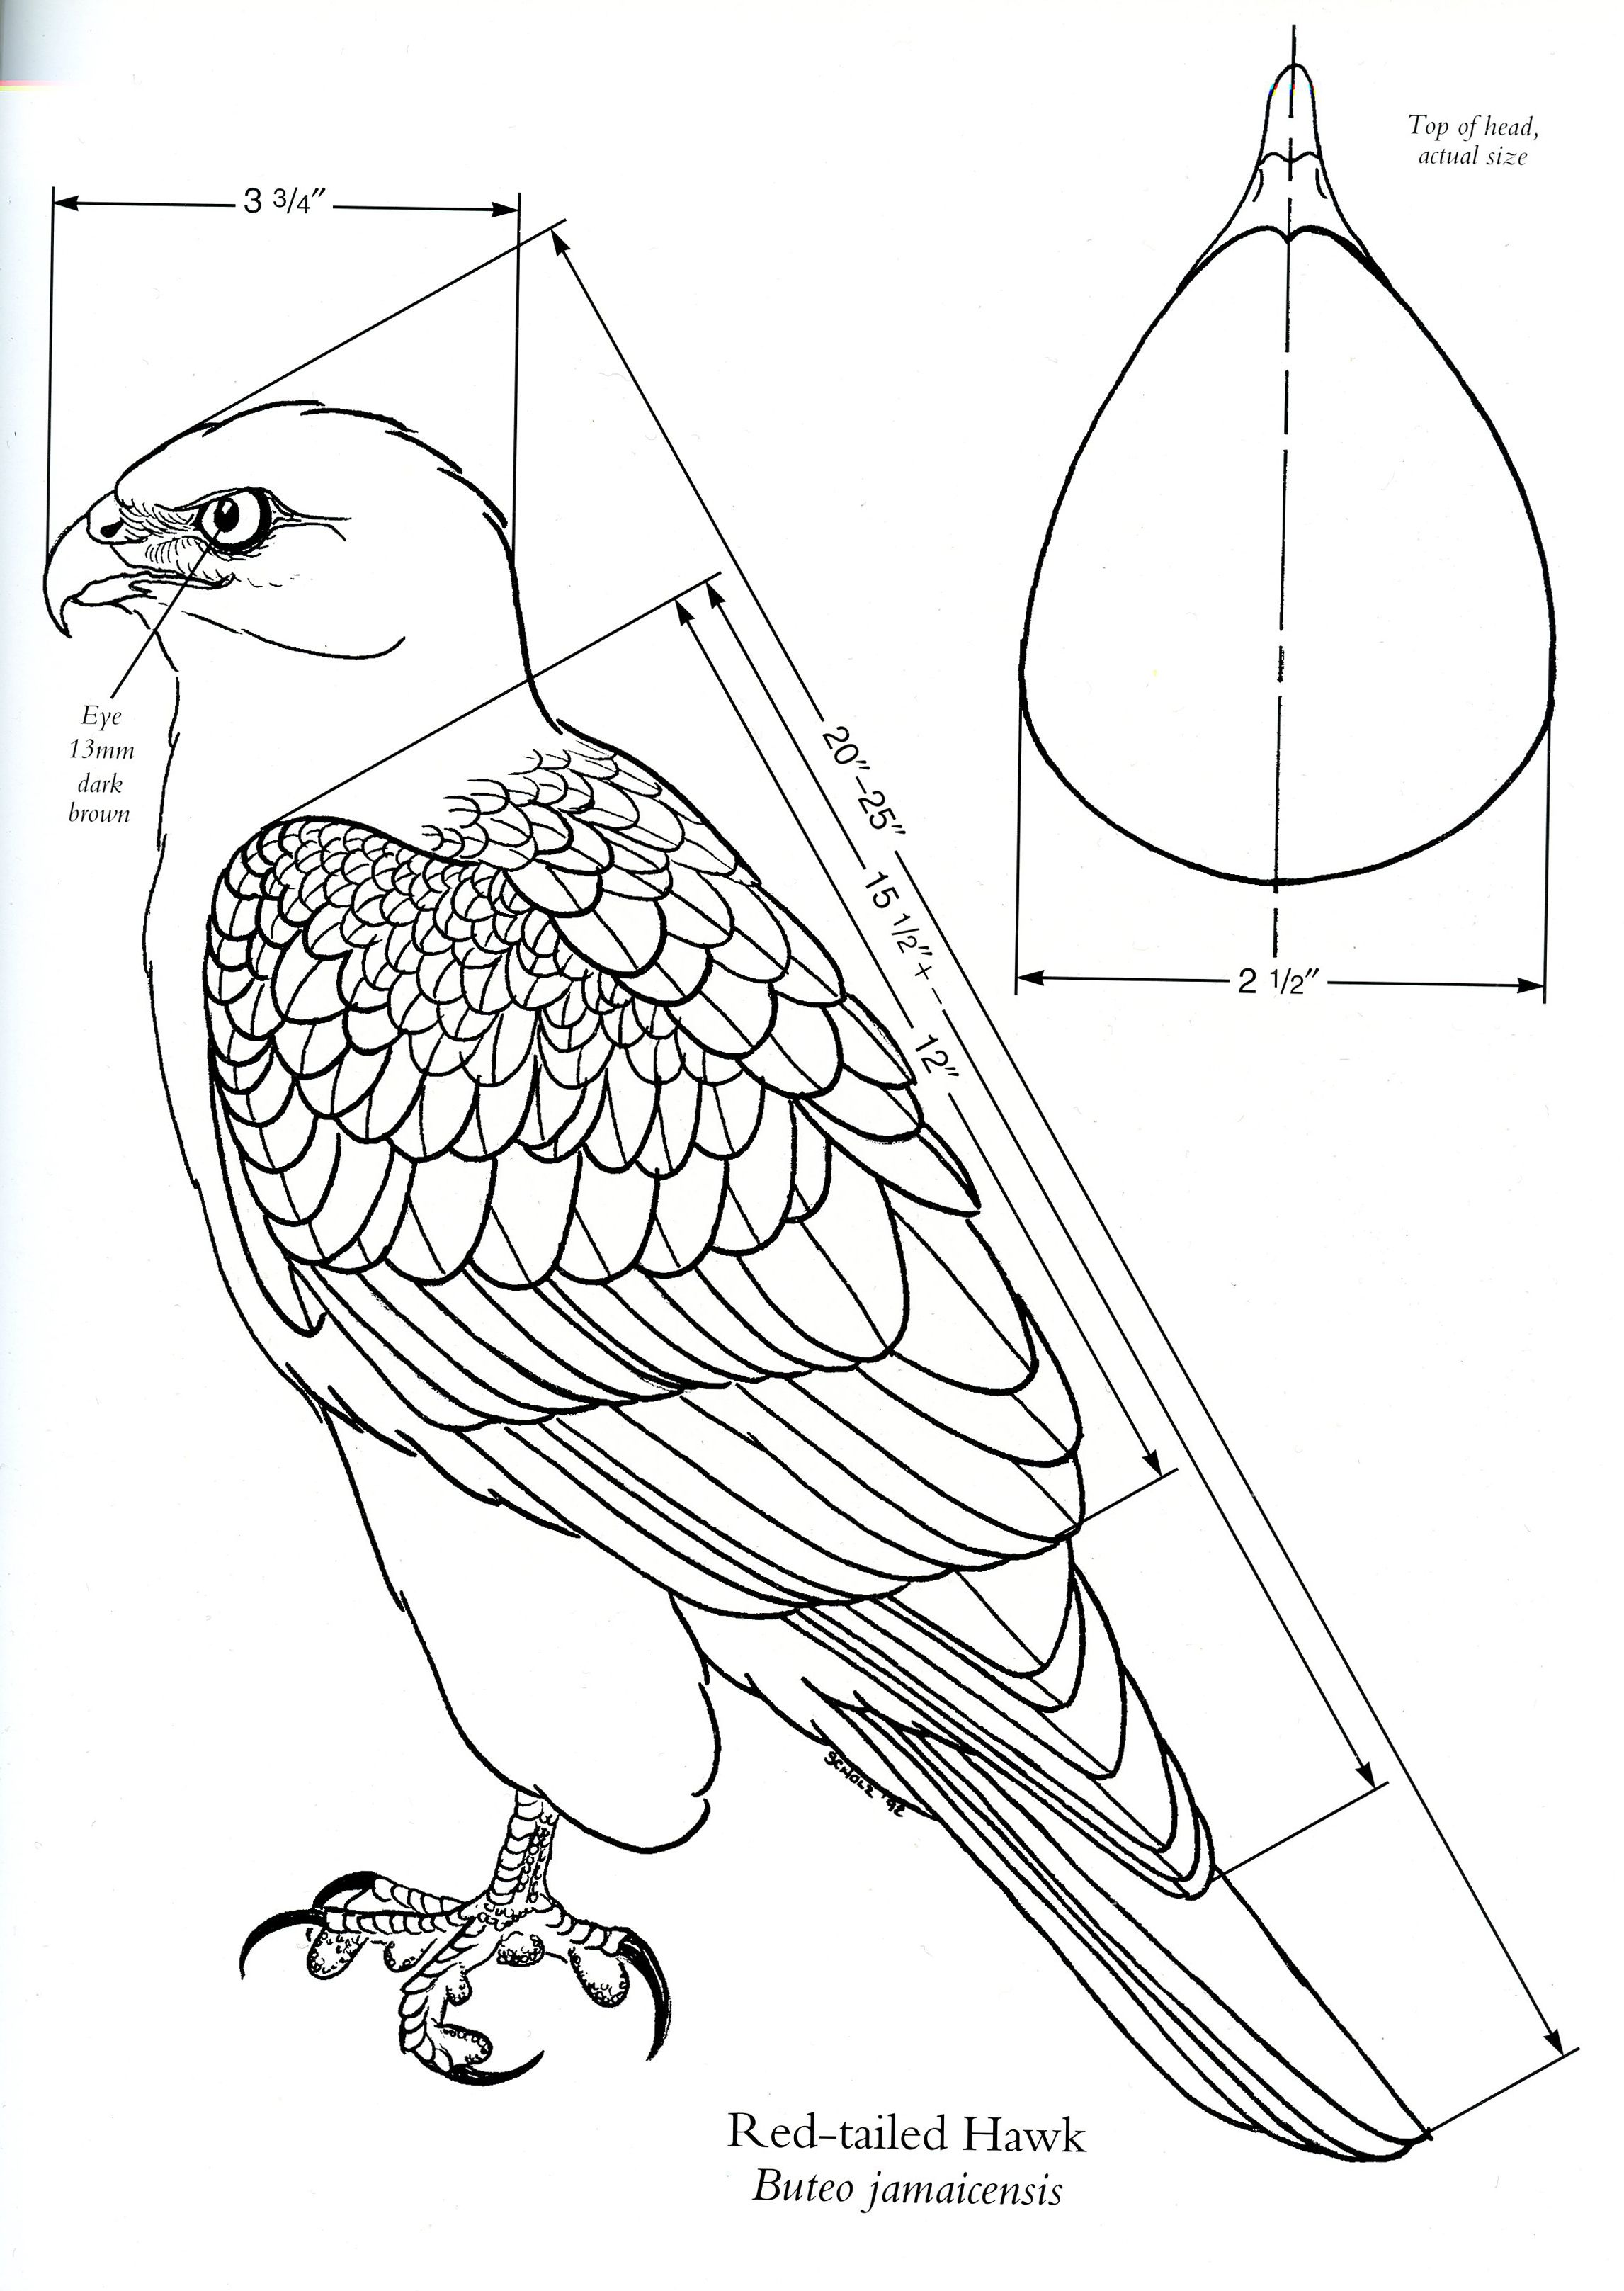 Diagram of a RedTailed Hawk [Source: Birds of Prey by